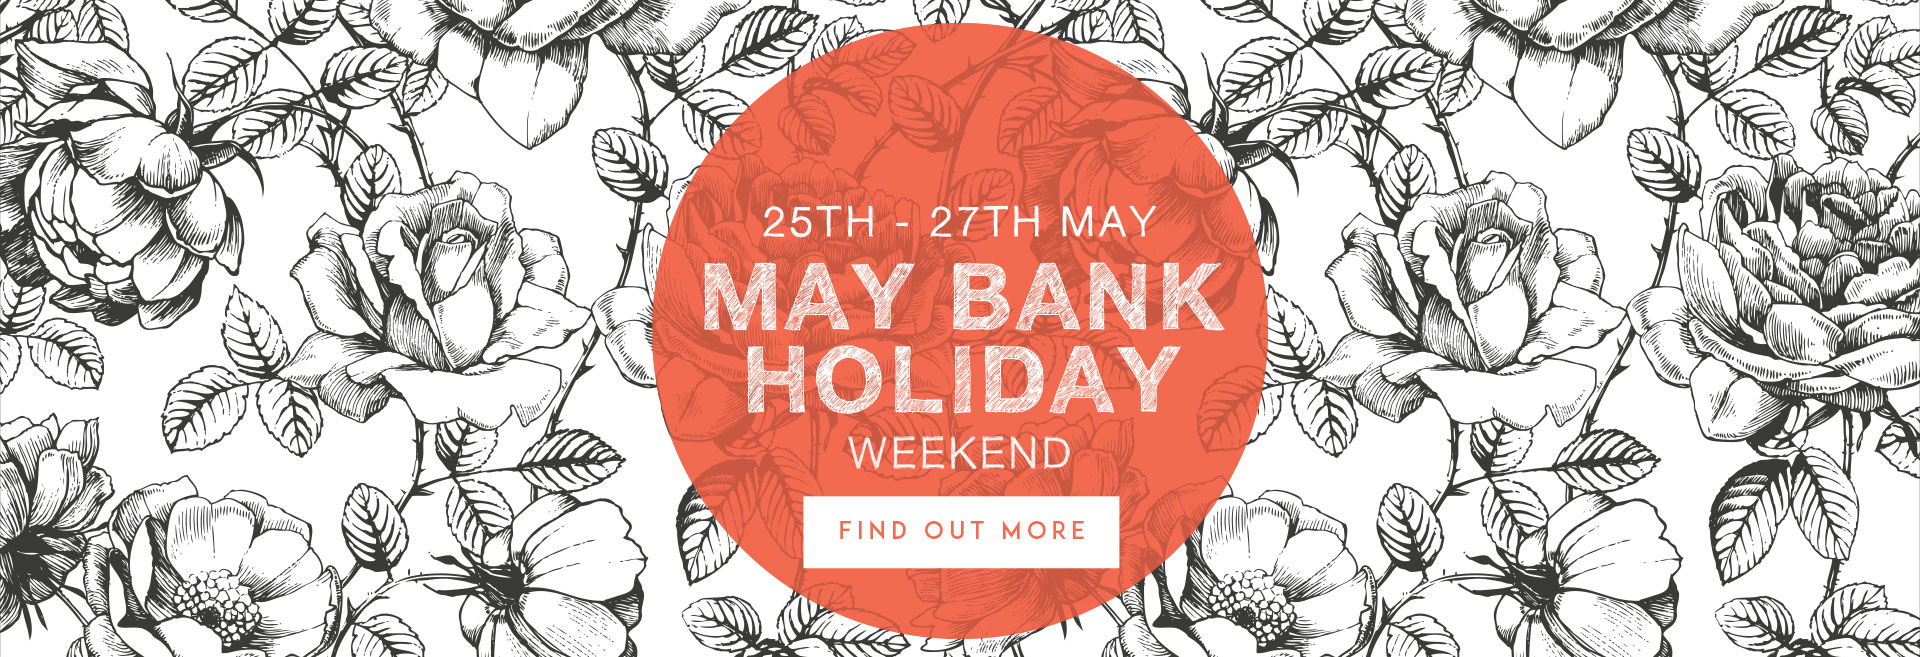 May Bank Holiday at The Alwyne Castle